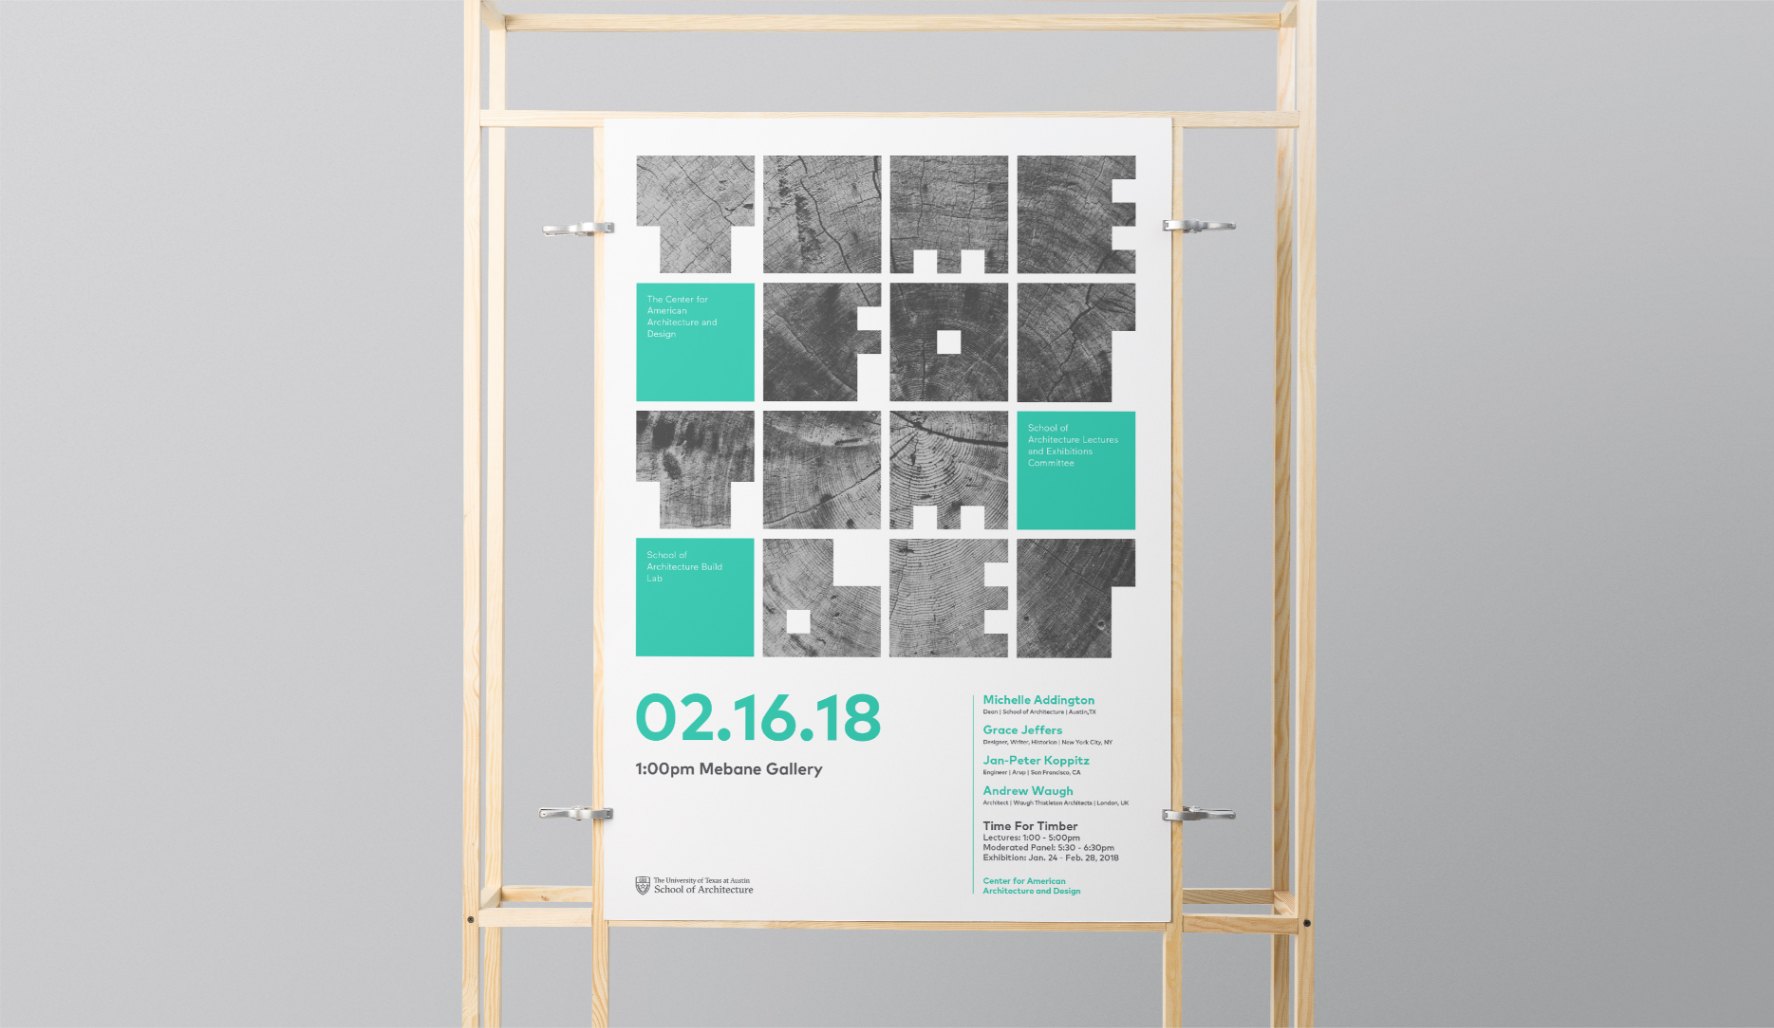 Time For Timber exhibition poster